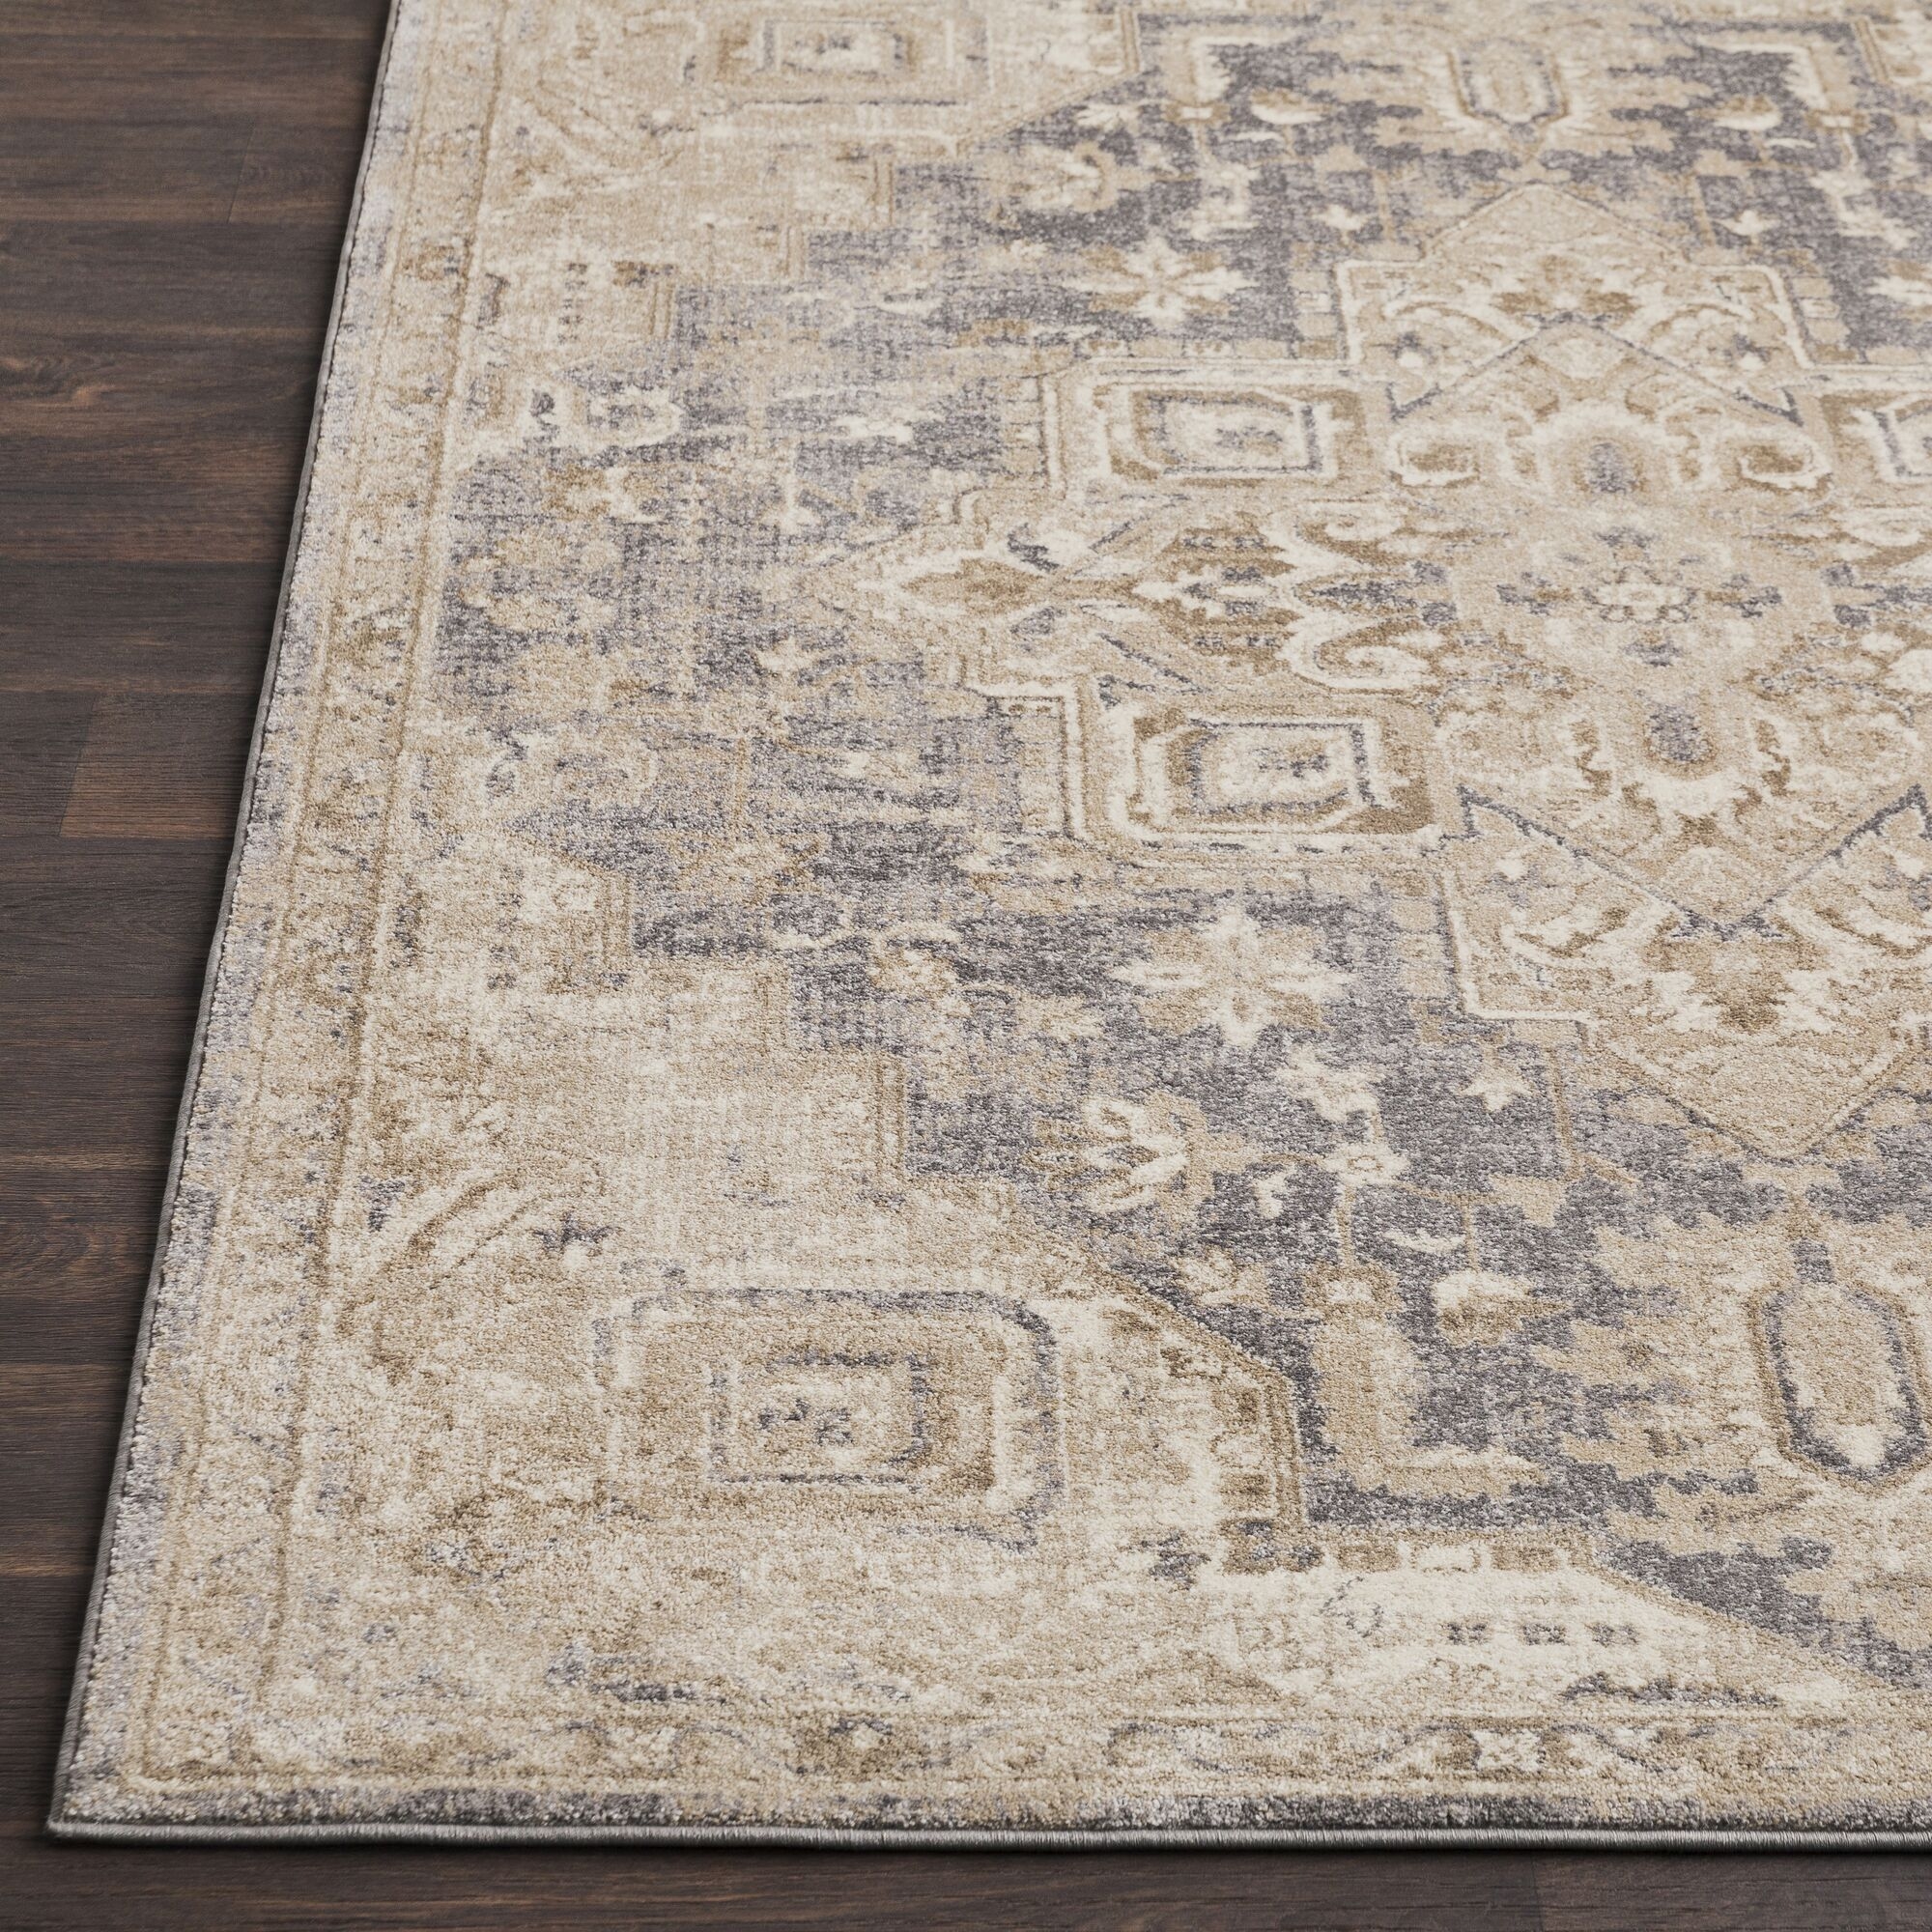 Richmondville Vintage Blue/Cream Area Rug Rug Size: Rectangle 9' x 12'